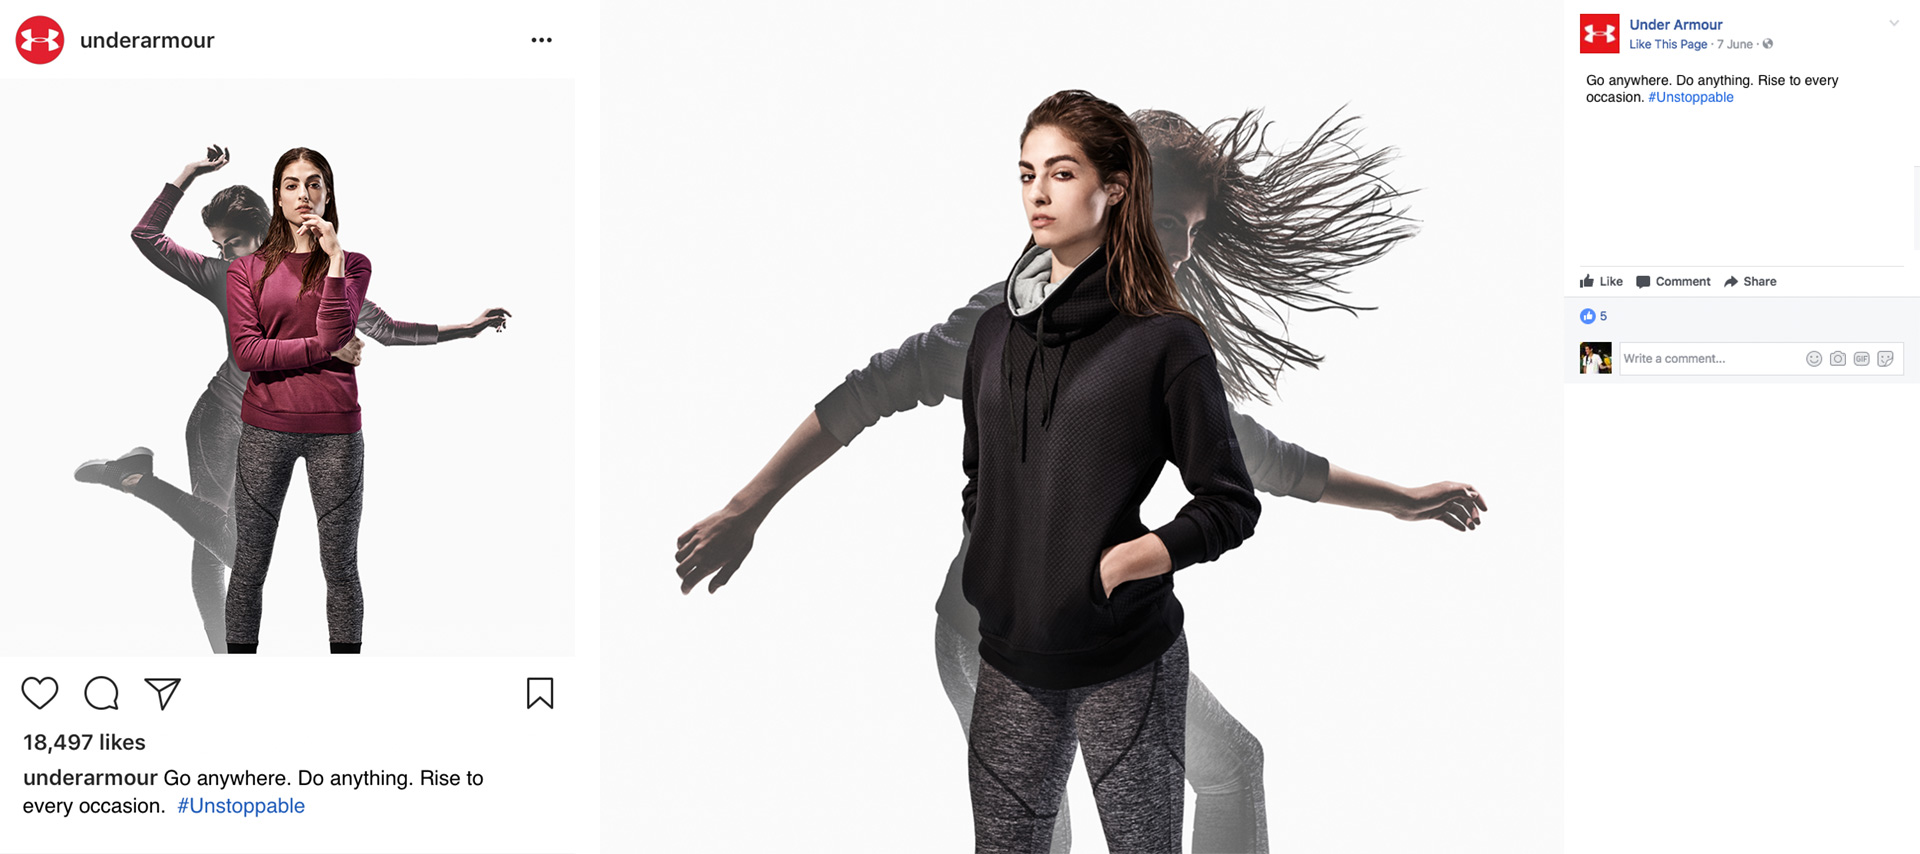 8c5168434 Under Armour - Case Study: apparel launch, branding   Made